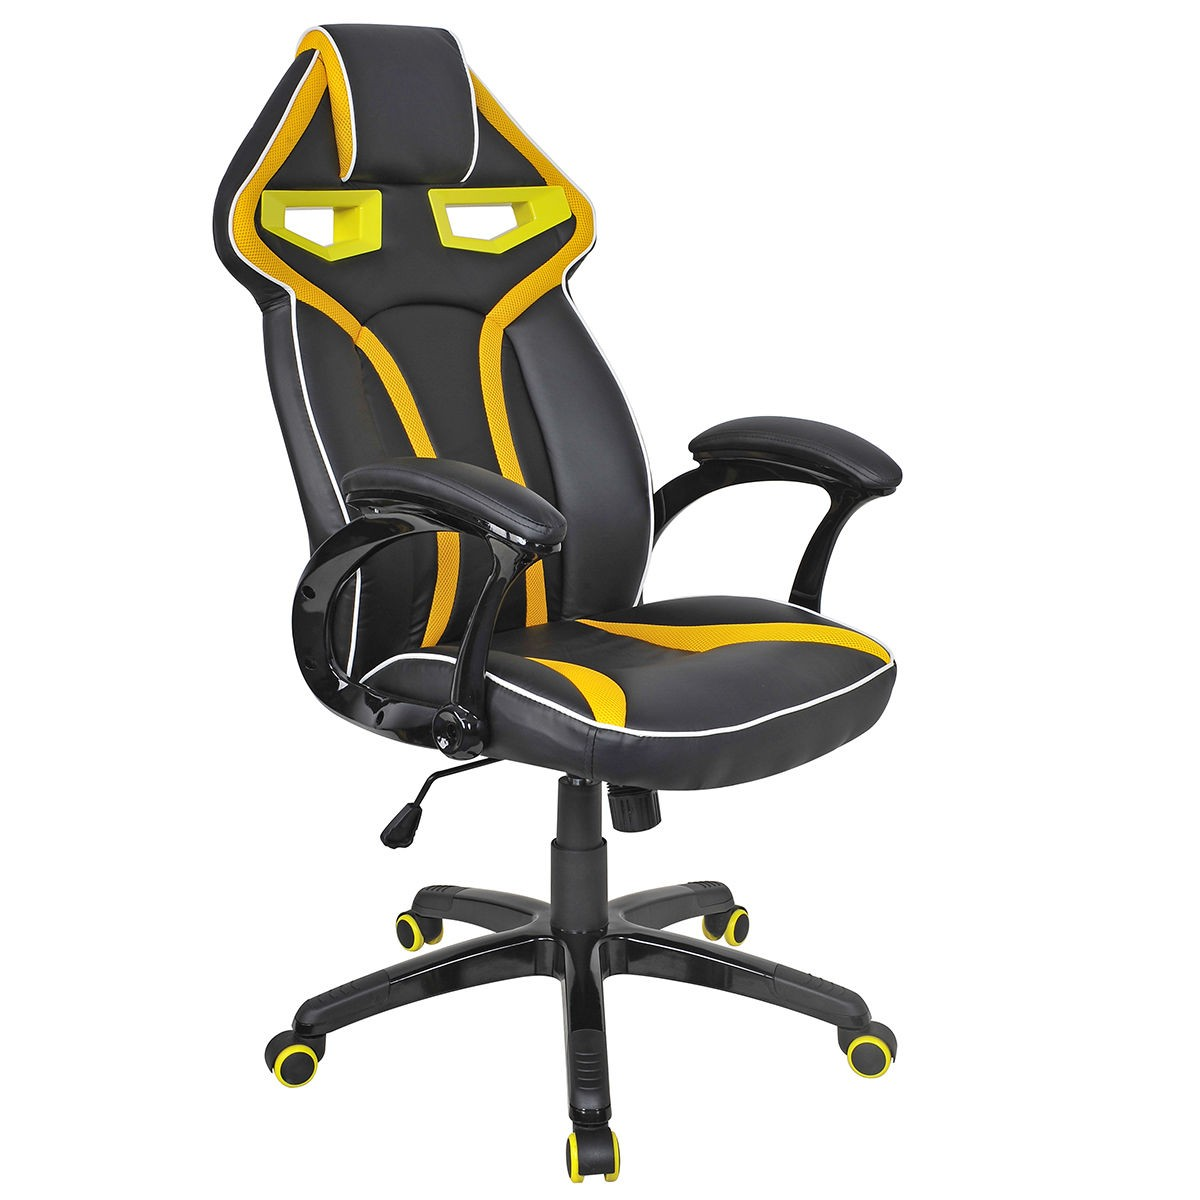 gaming chairs pc aluminum folding with webbing high back racing bucket seat chair computer desk